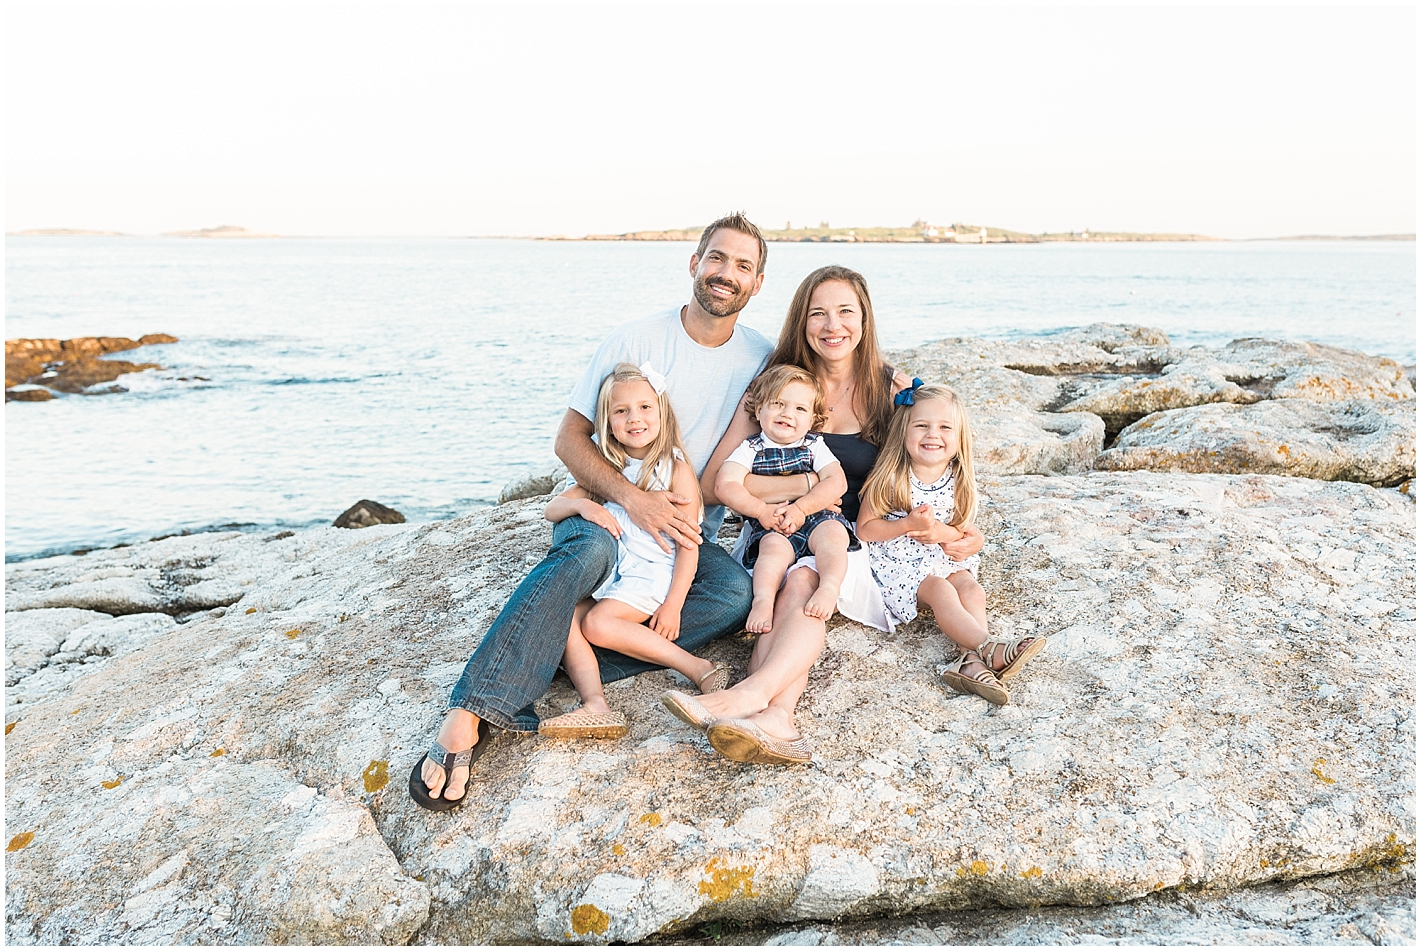 Summer beach family session by Alyssa Parker Photography